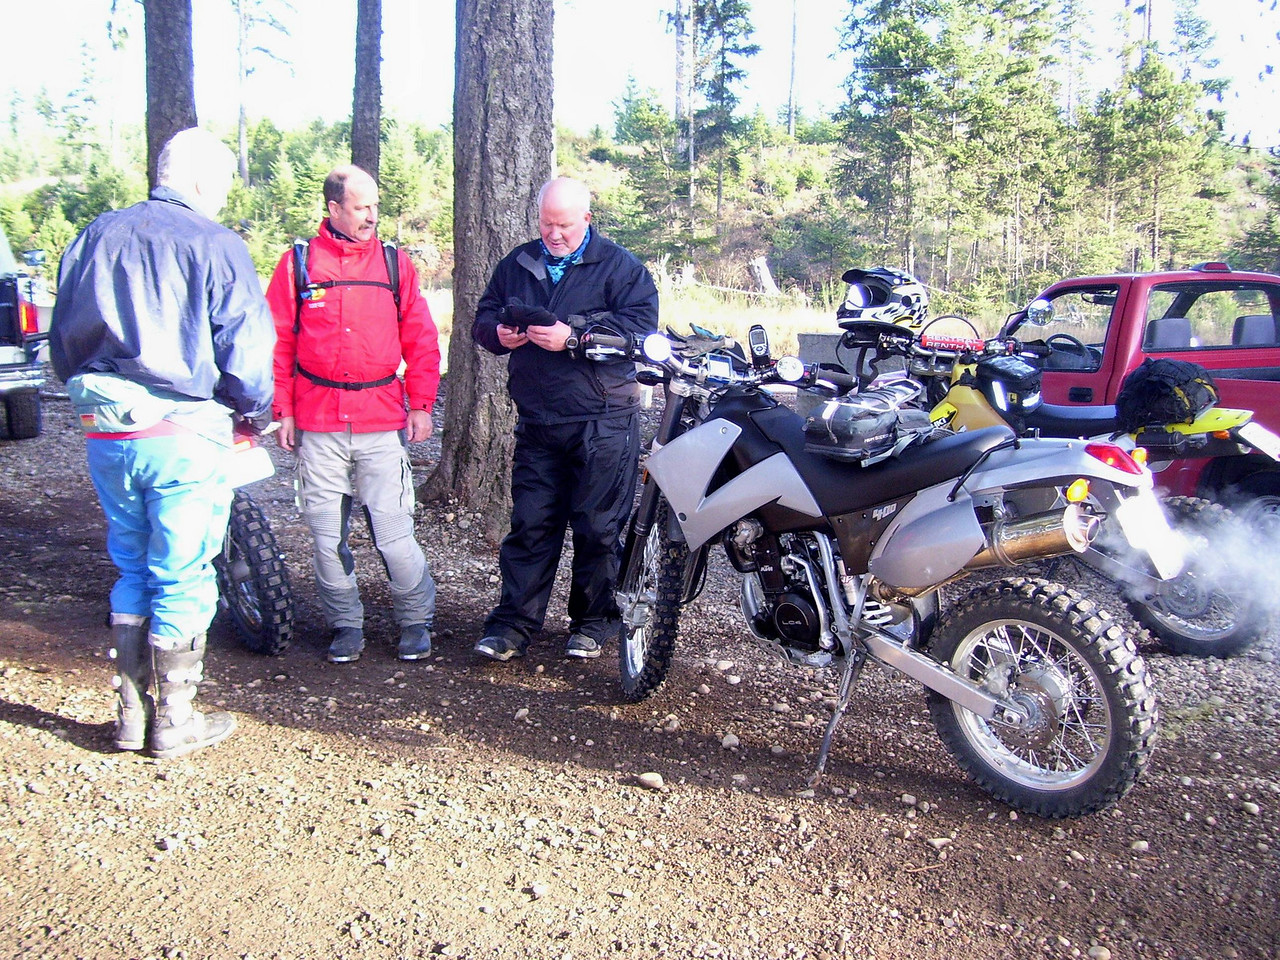 We started from the Sand Hill Gravel Pit. That's the new (to me) KTM 400. Tod is ridding an X - Challenge, Paul a DRZ 400, and Bill an '85 Honda XR 350R.